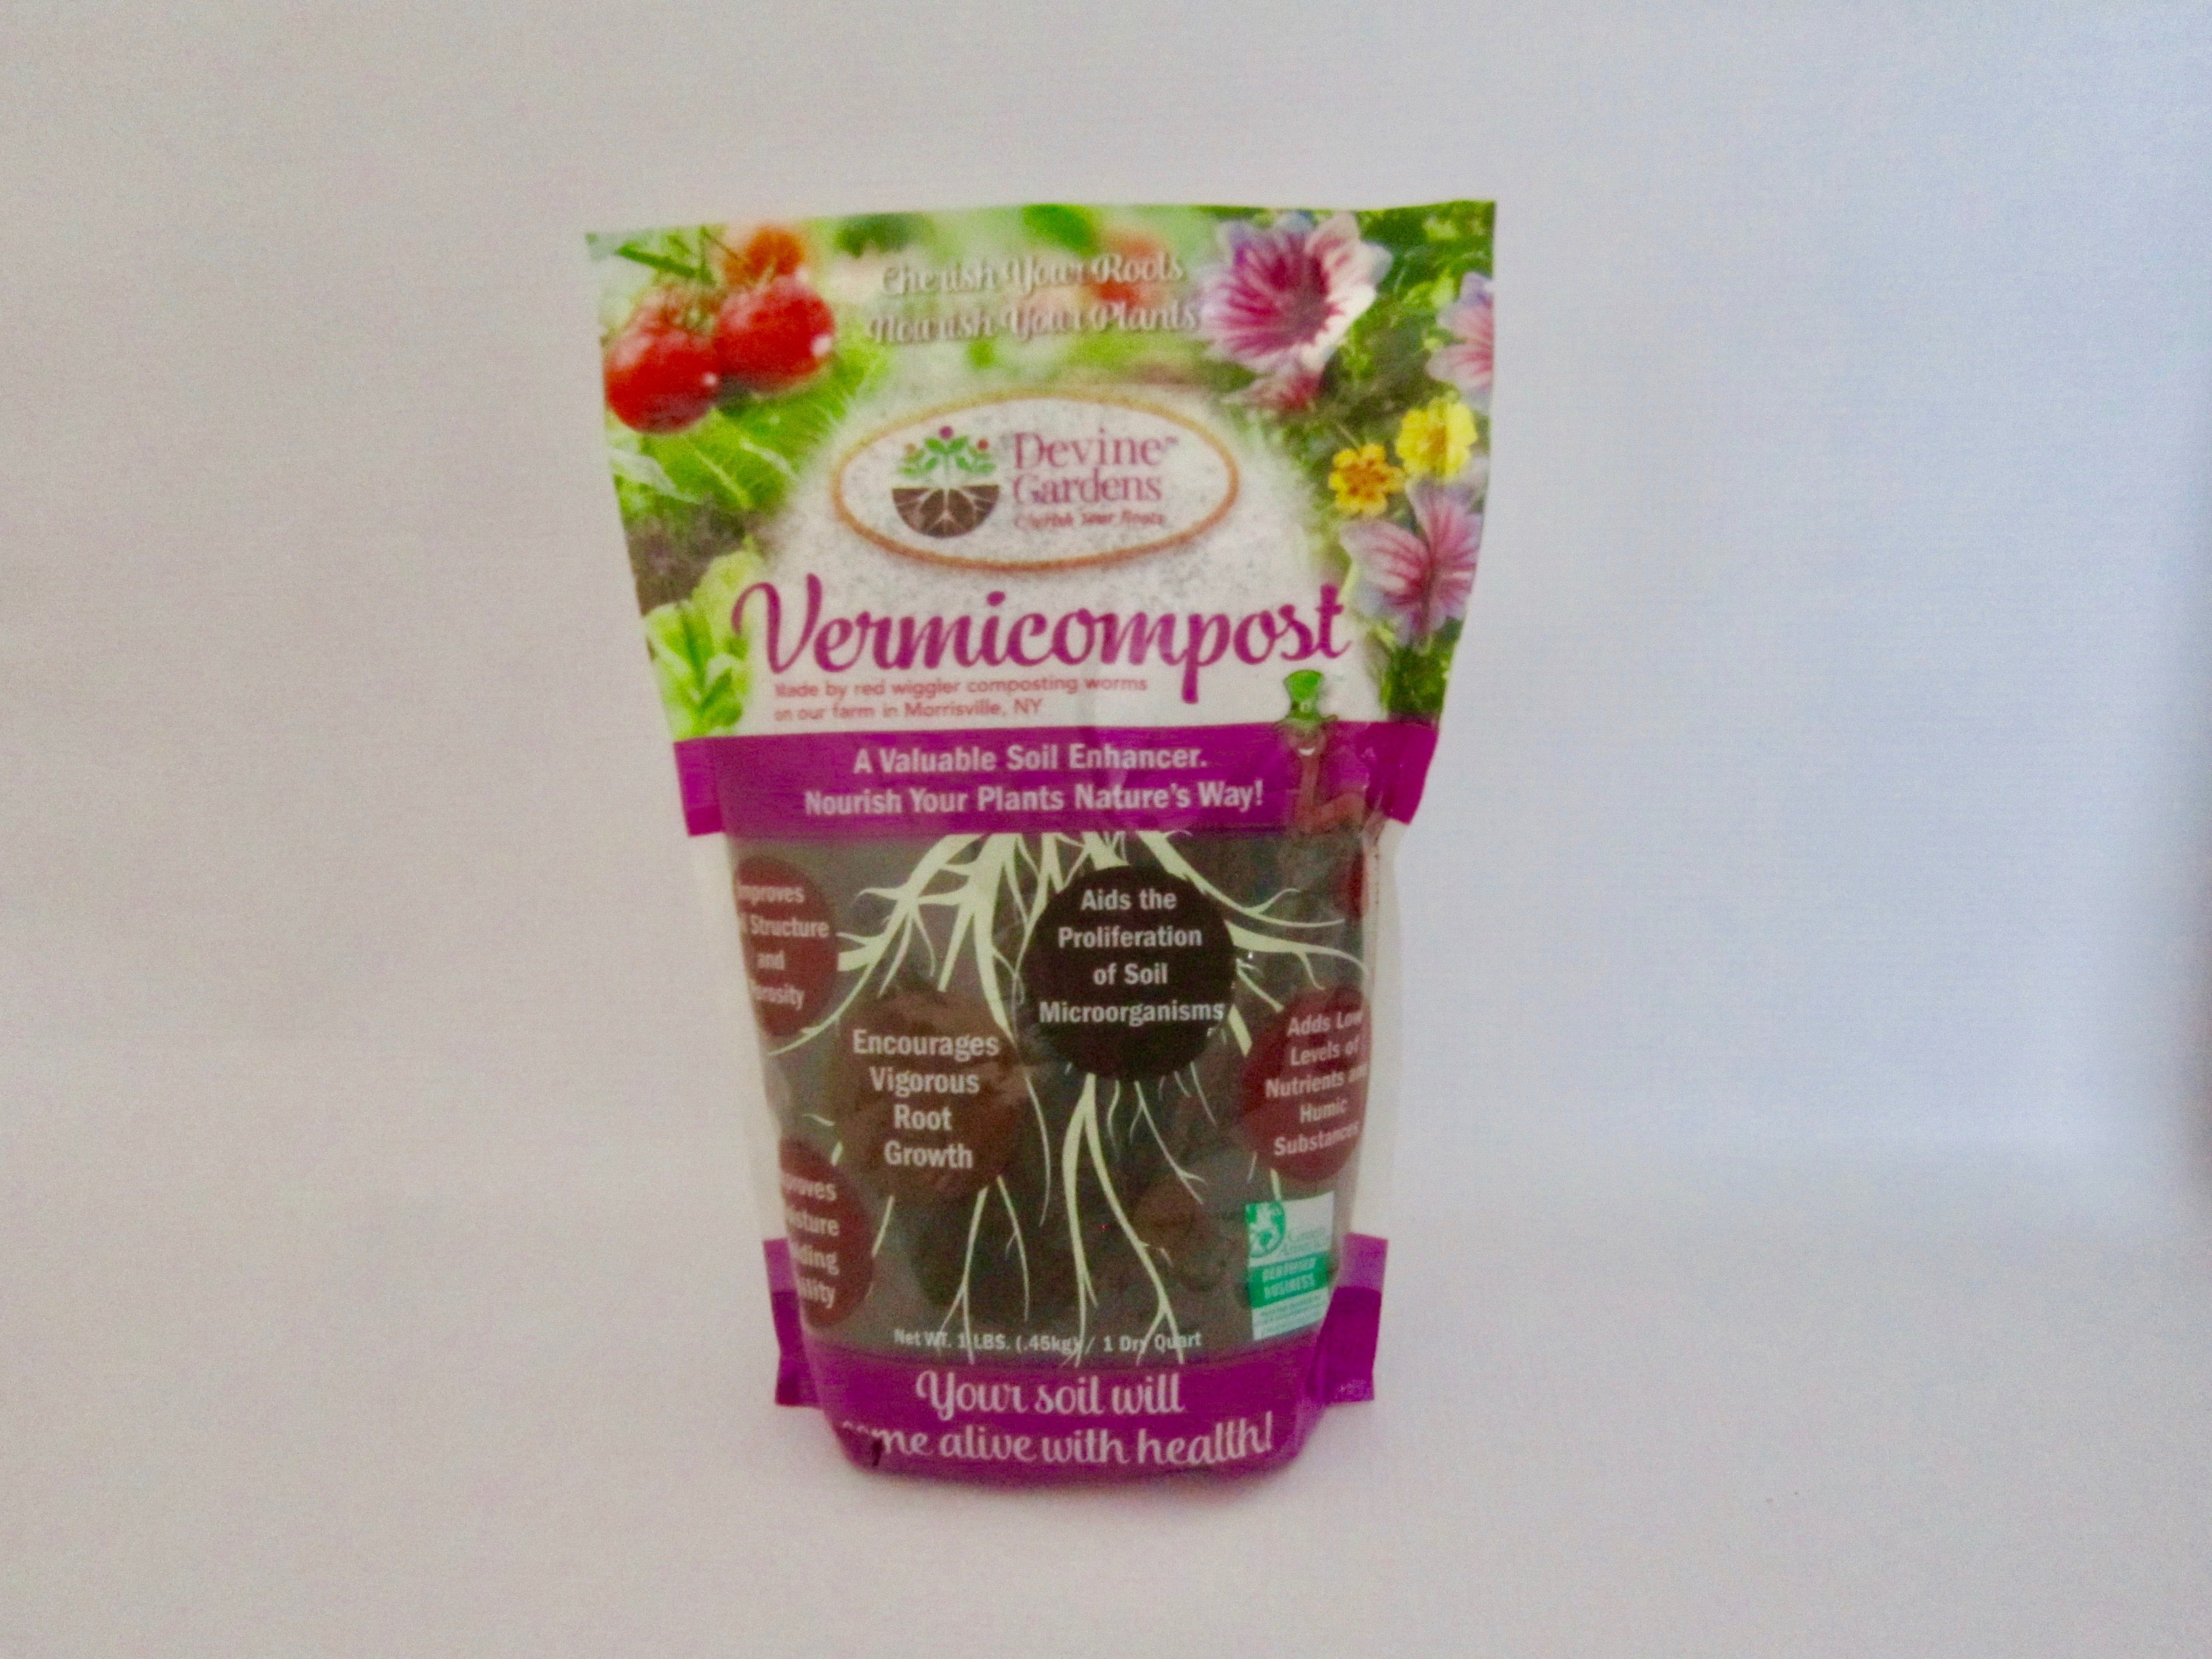 One pound/one quart bag of  Vermicompost